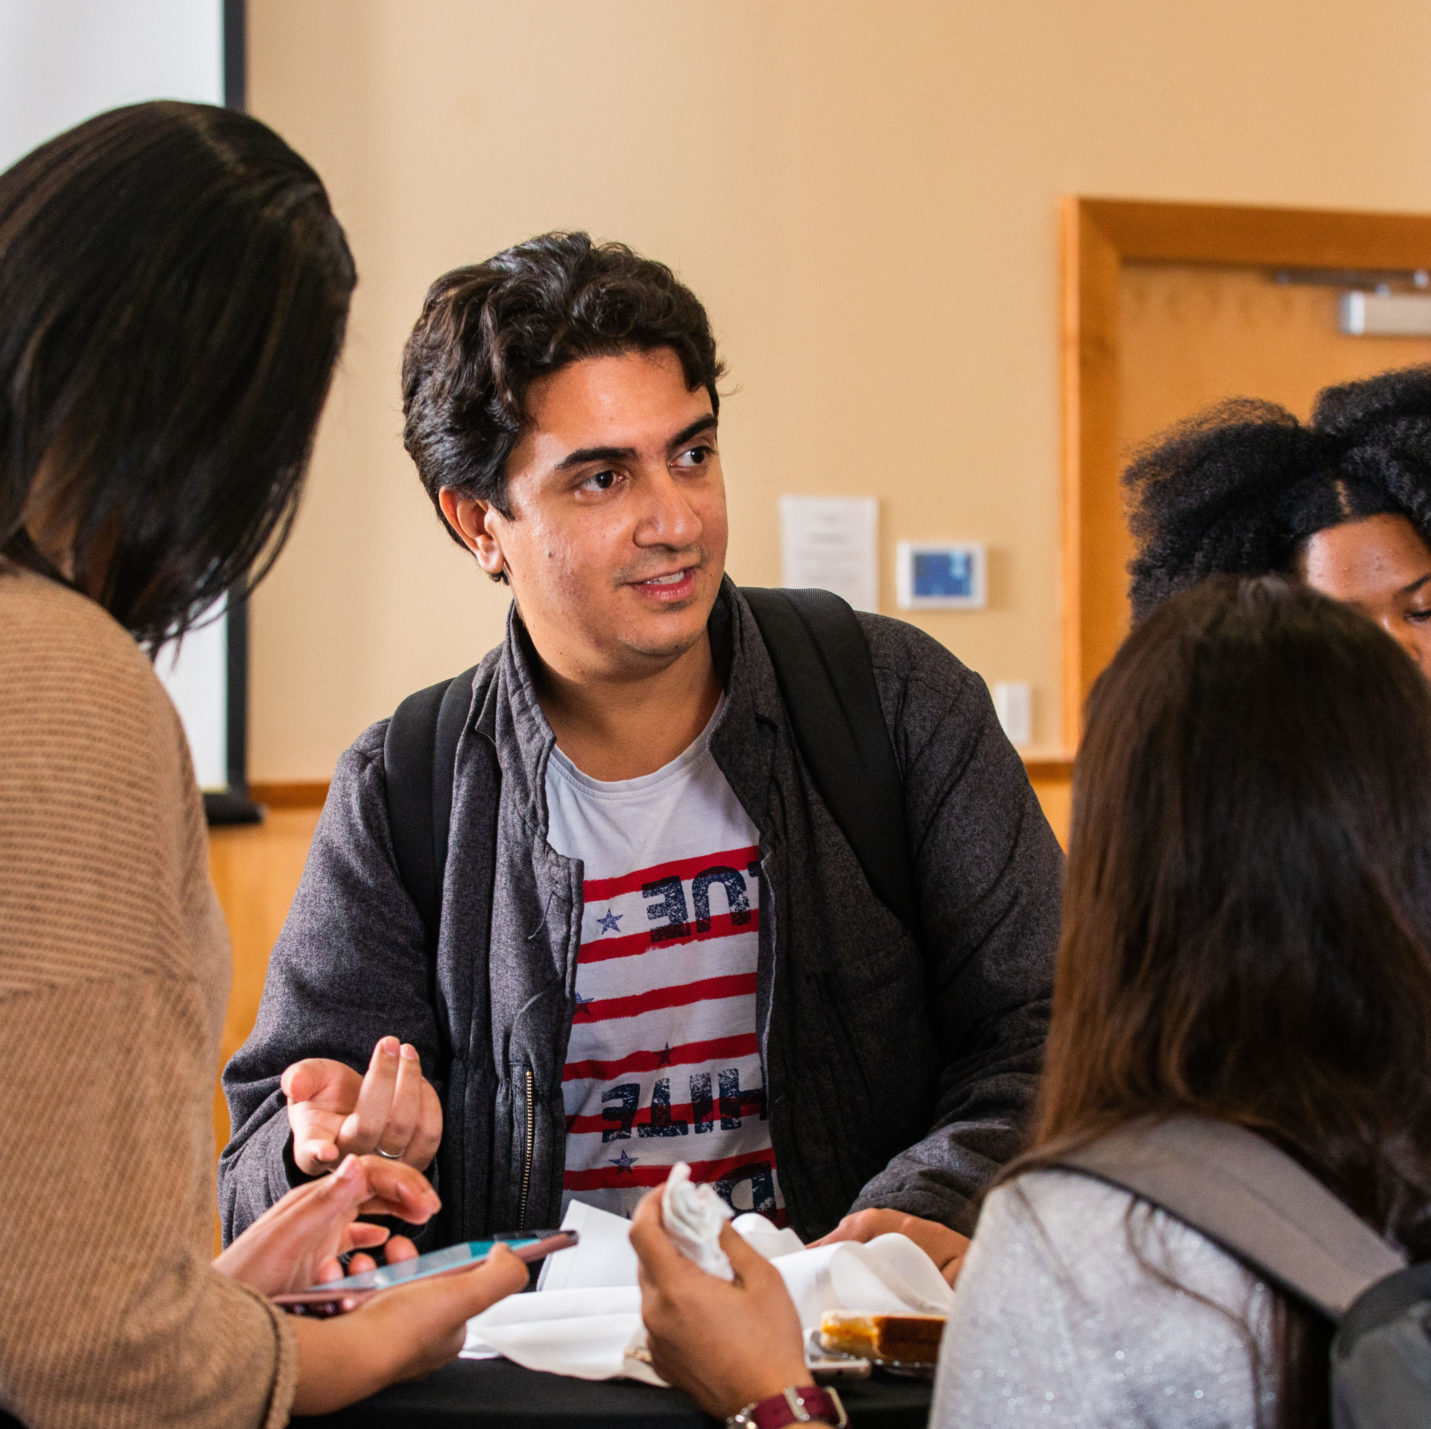 Students talking around a table.